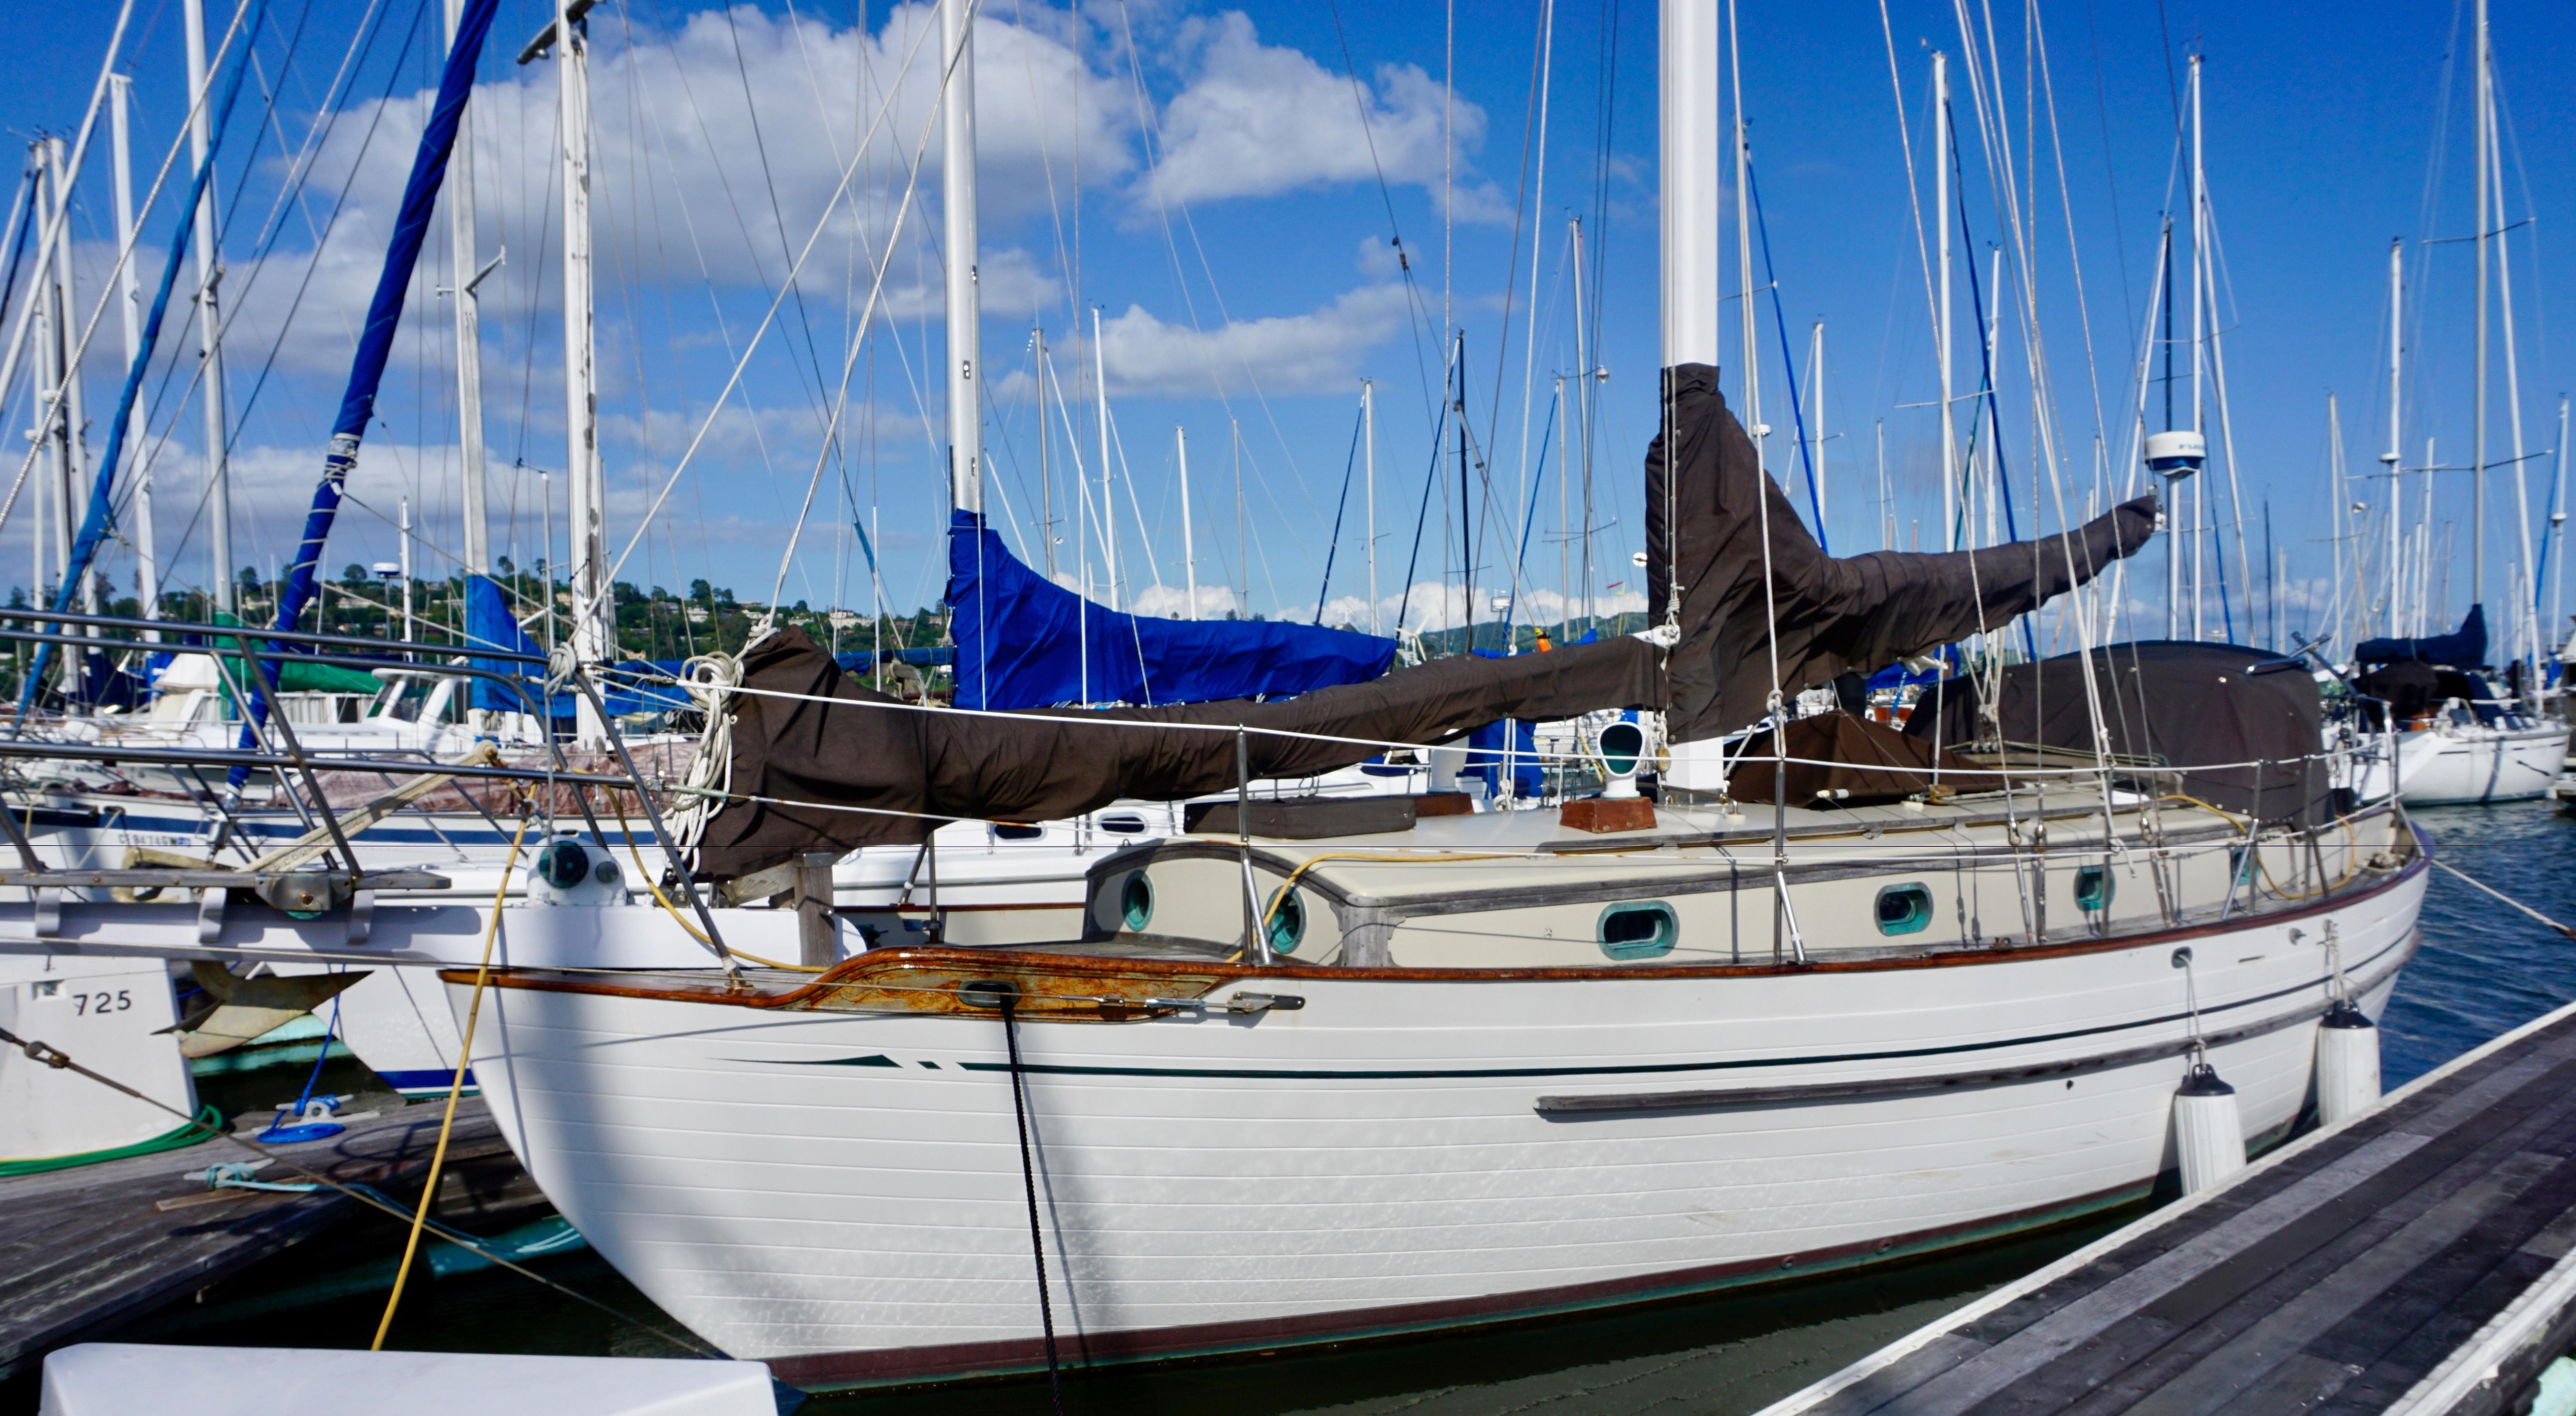 6204117_20170419124332849_1_XLARGE&w=6000&h=3299&t=1492634944000 1976 tayana 37 sail boat for sale www yachtworld com  at soozxer.org